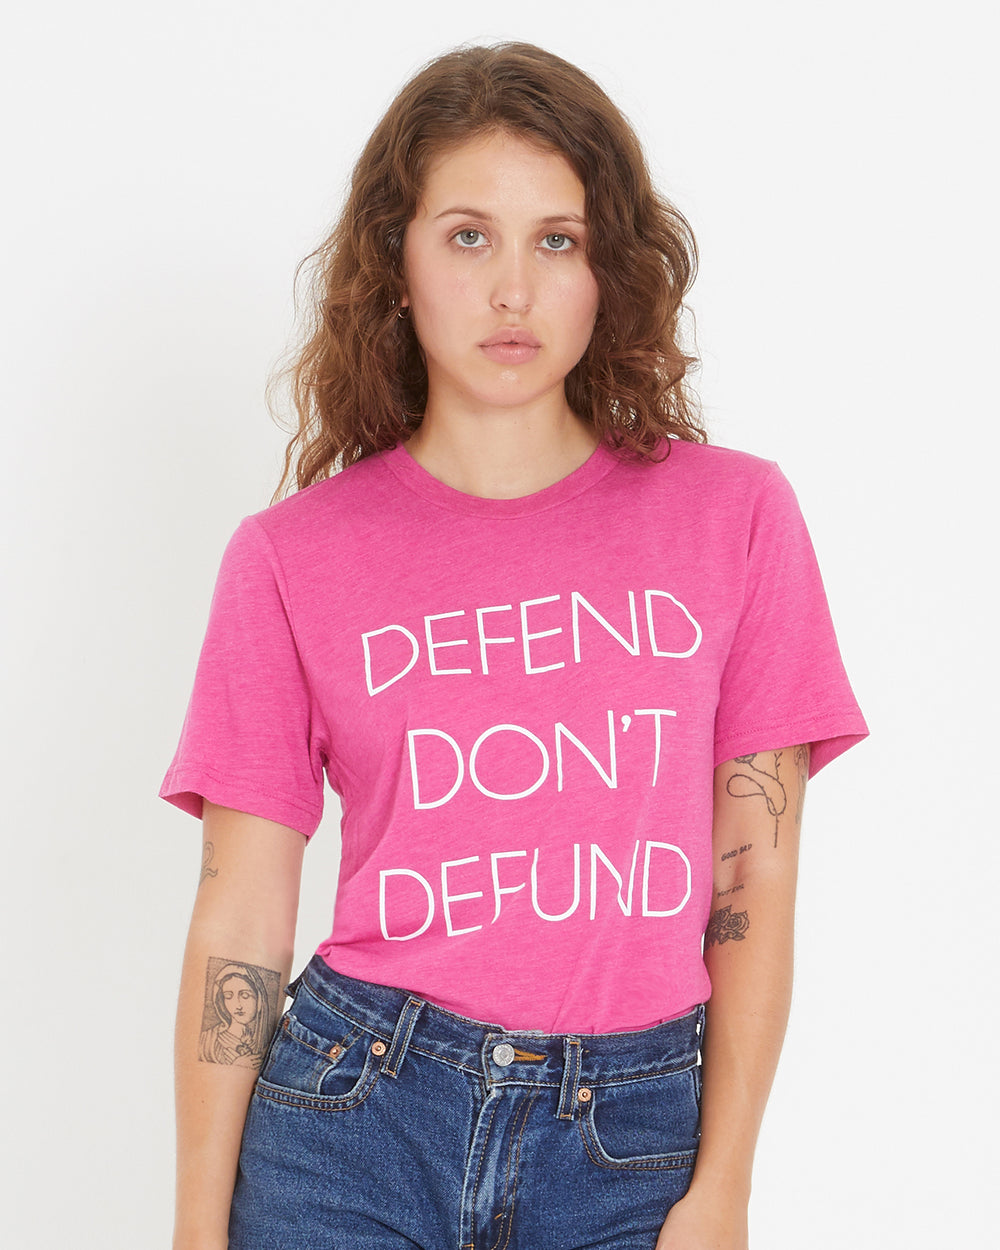 Defend Don't Defund Tee